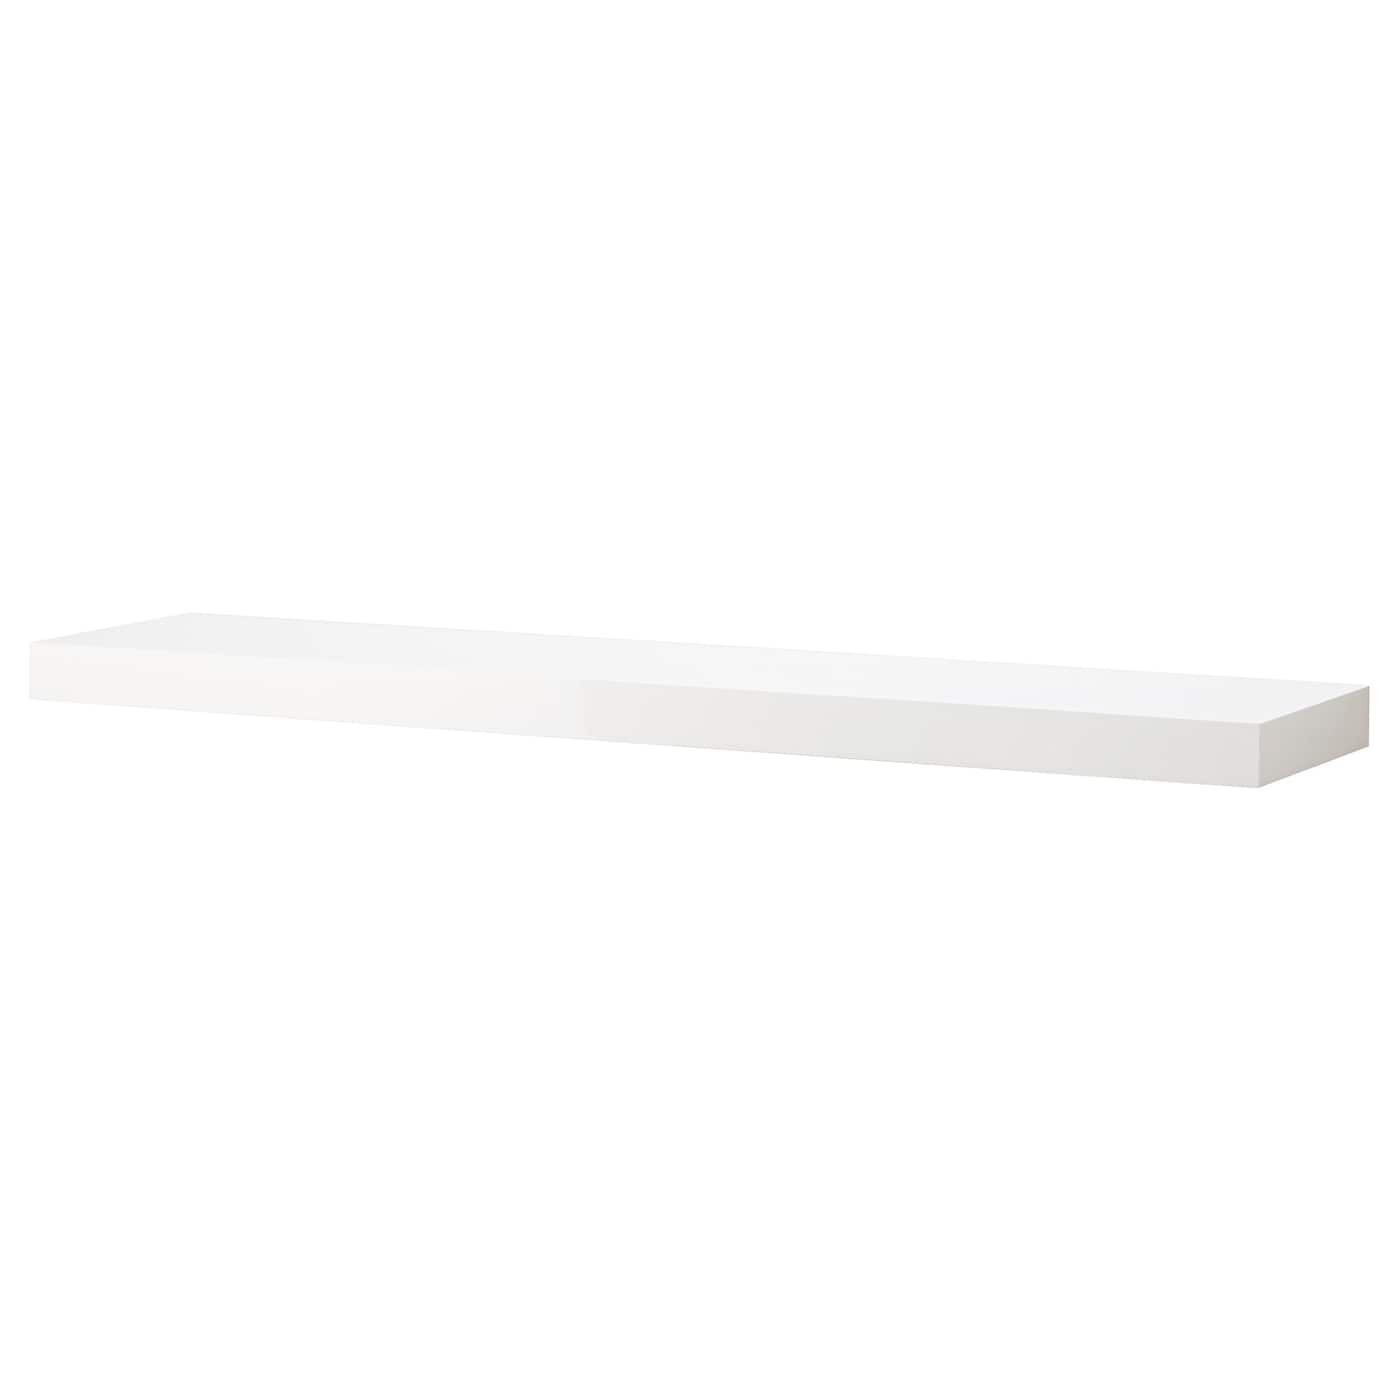 lack wall shelf white/high-gloss 110 x 26 cm - ikea